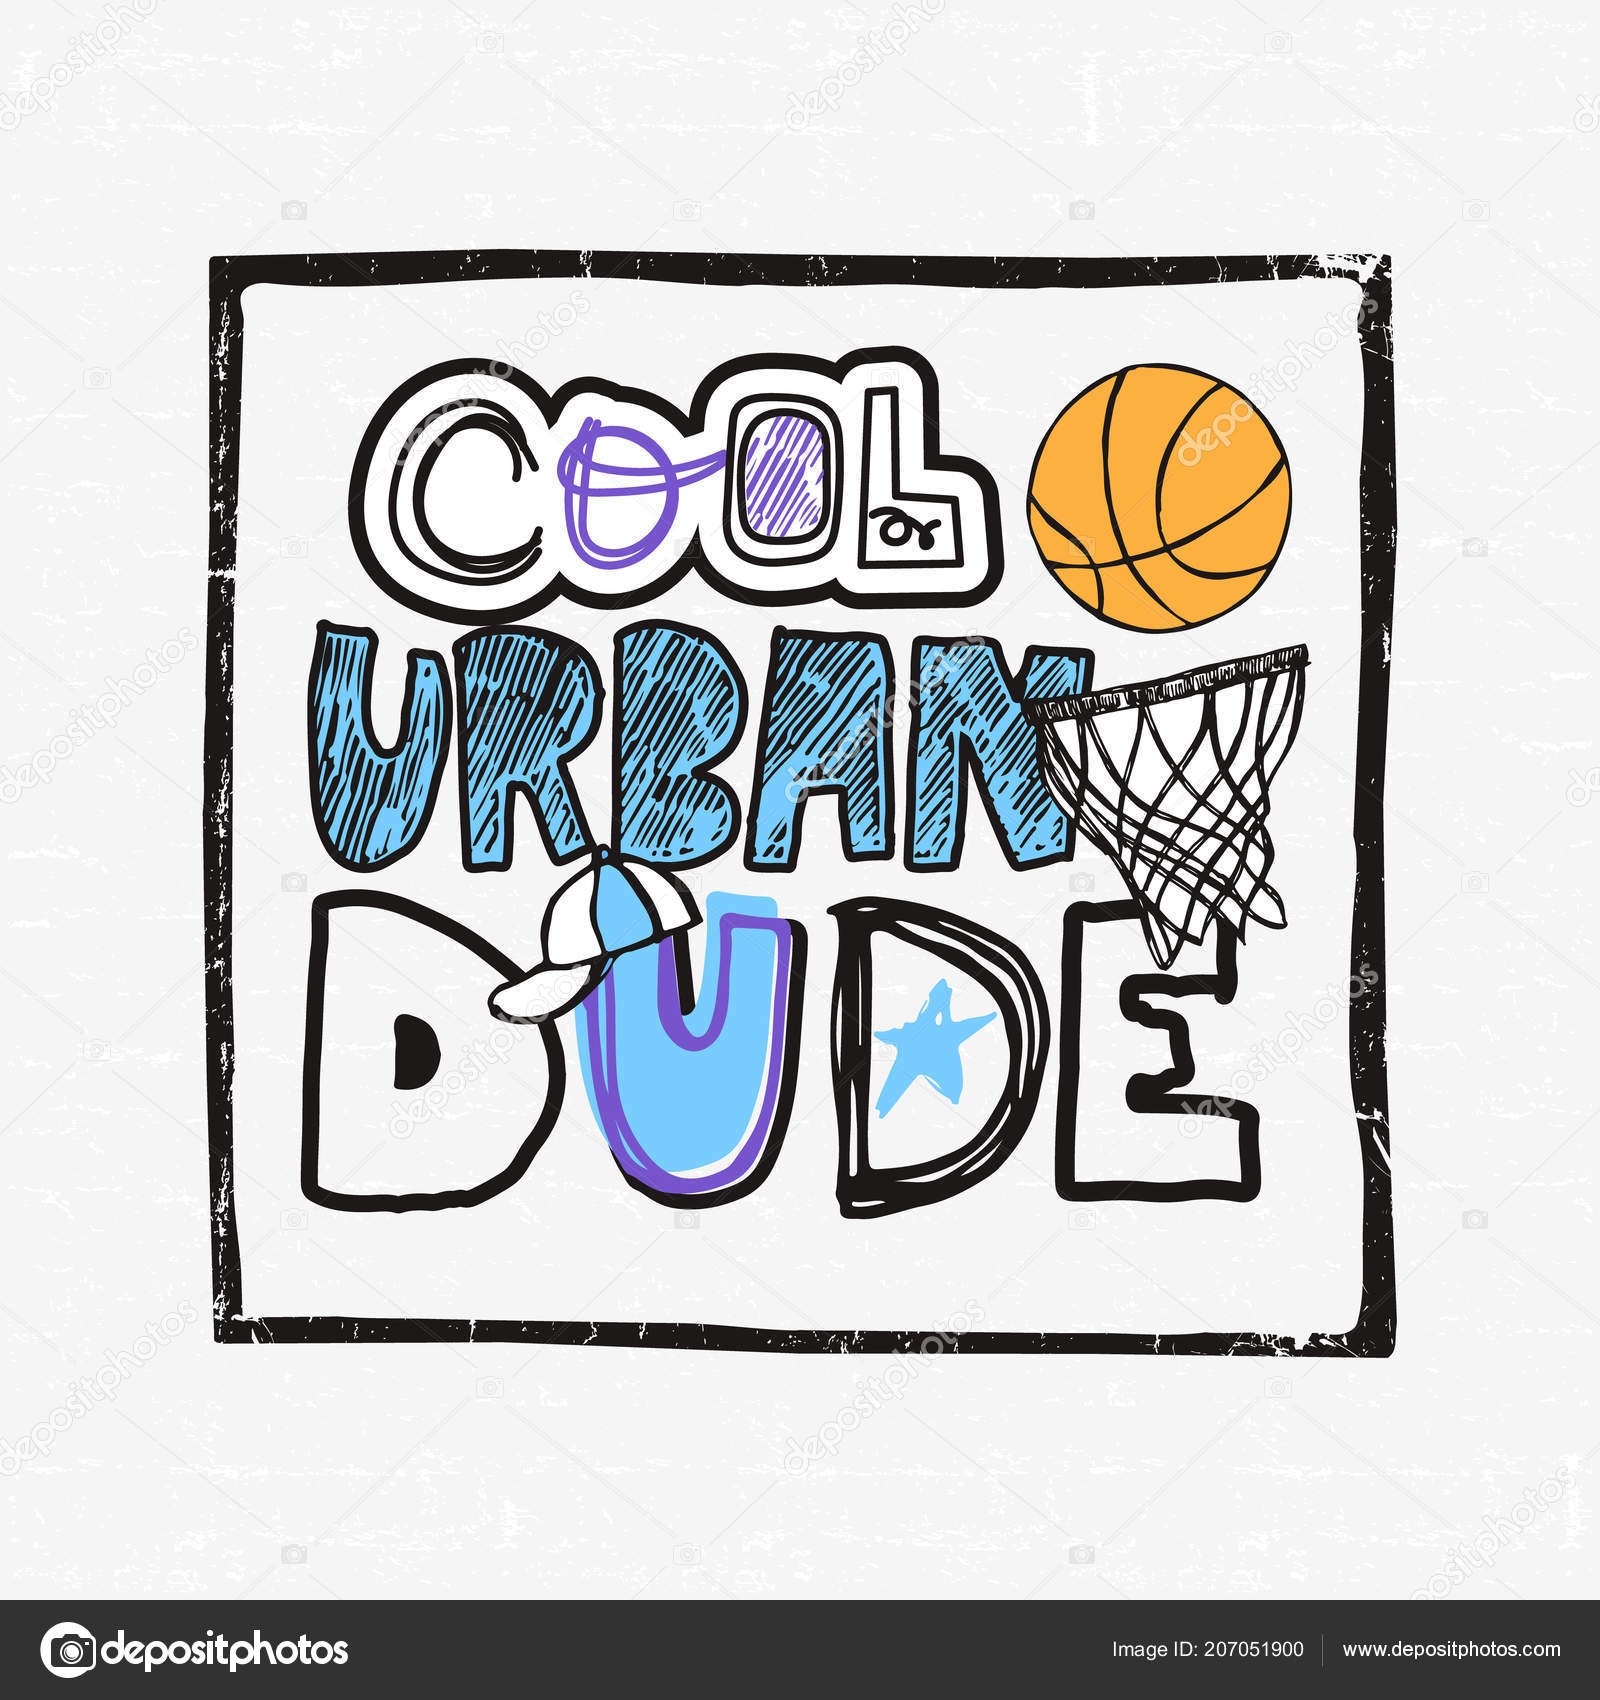 183a67c22 Illustration Basketball Grunge Sketch Cool Urban Dude Text Typography  Slogan — Stock Vector